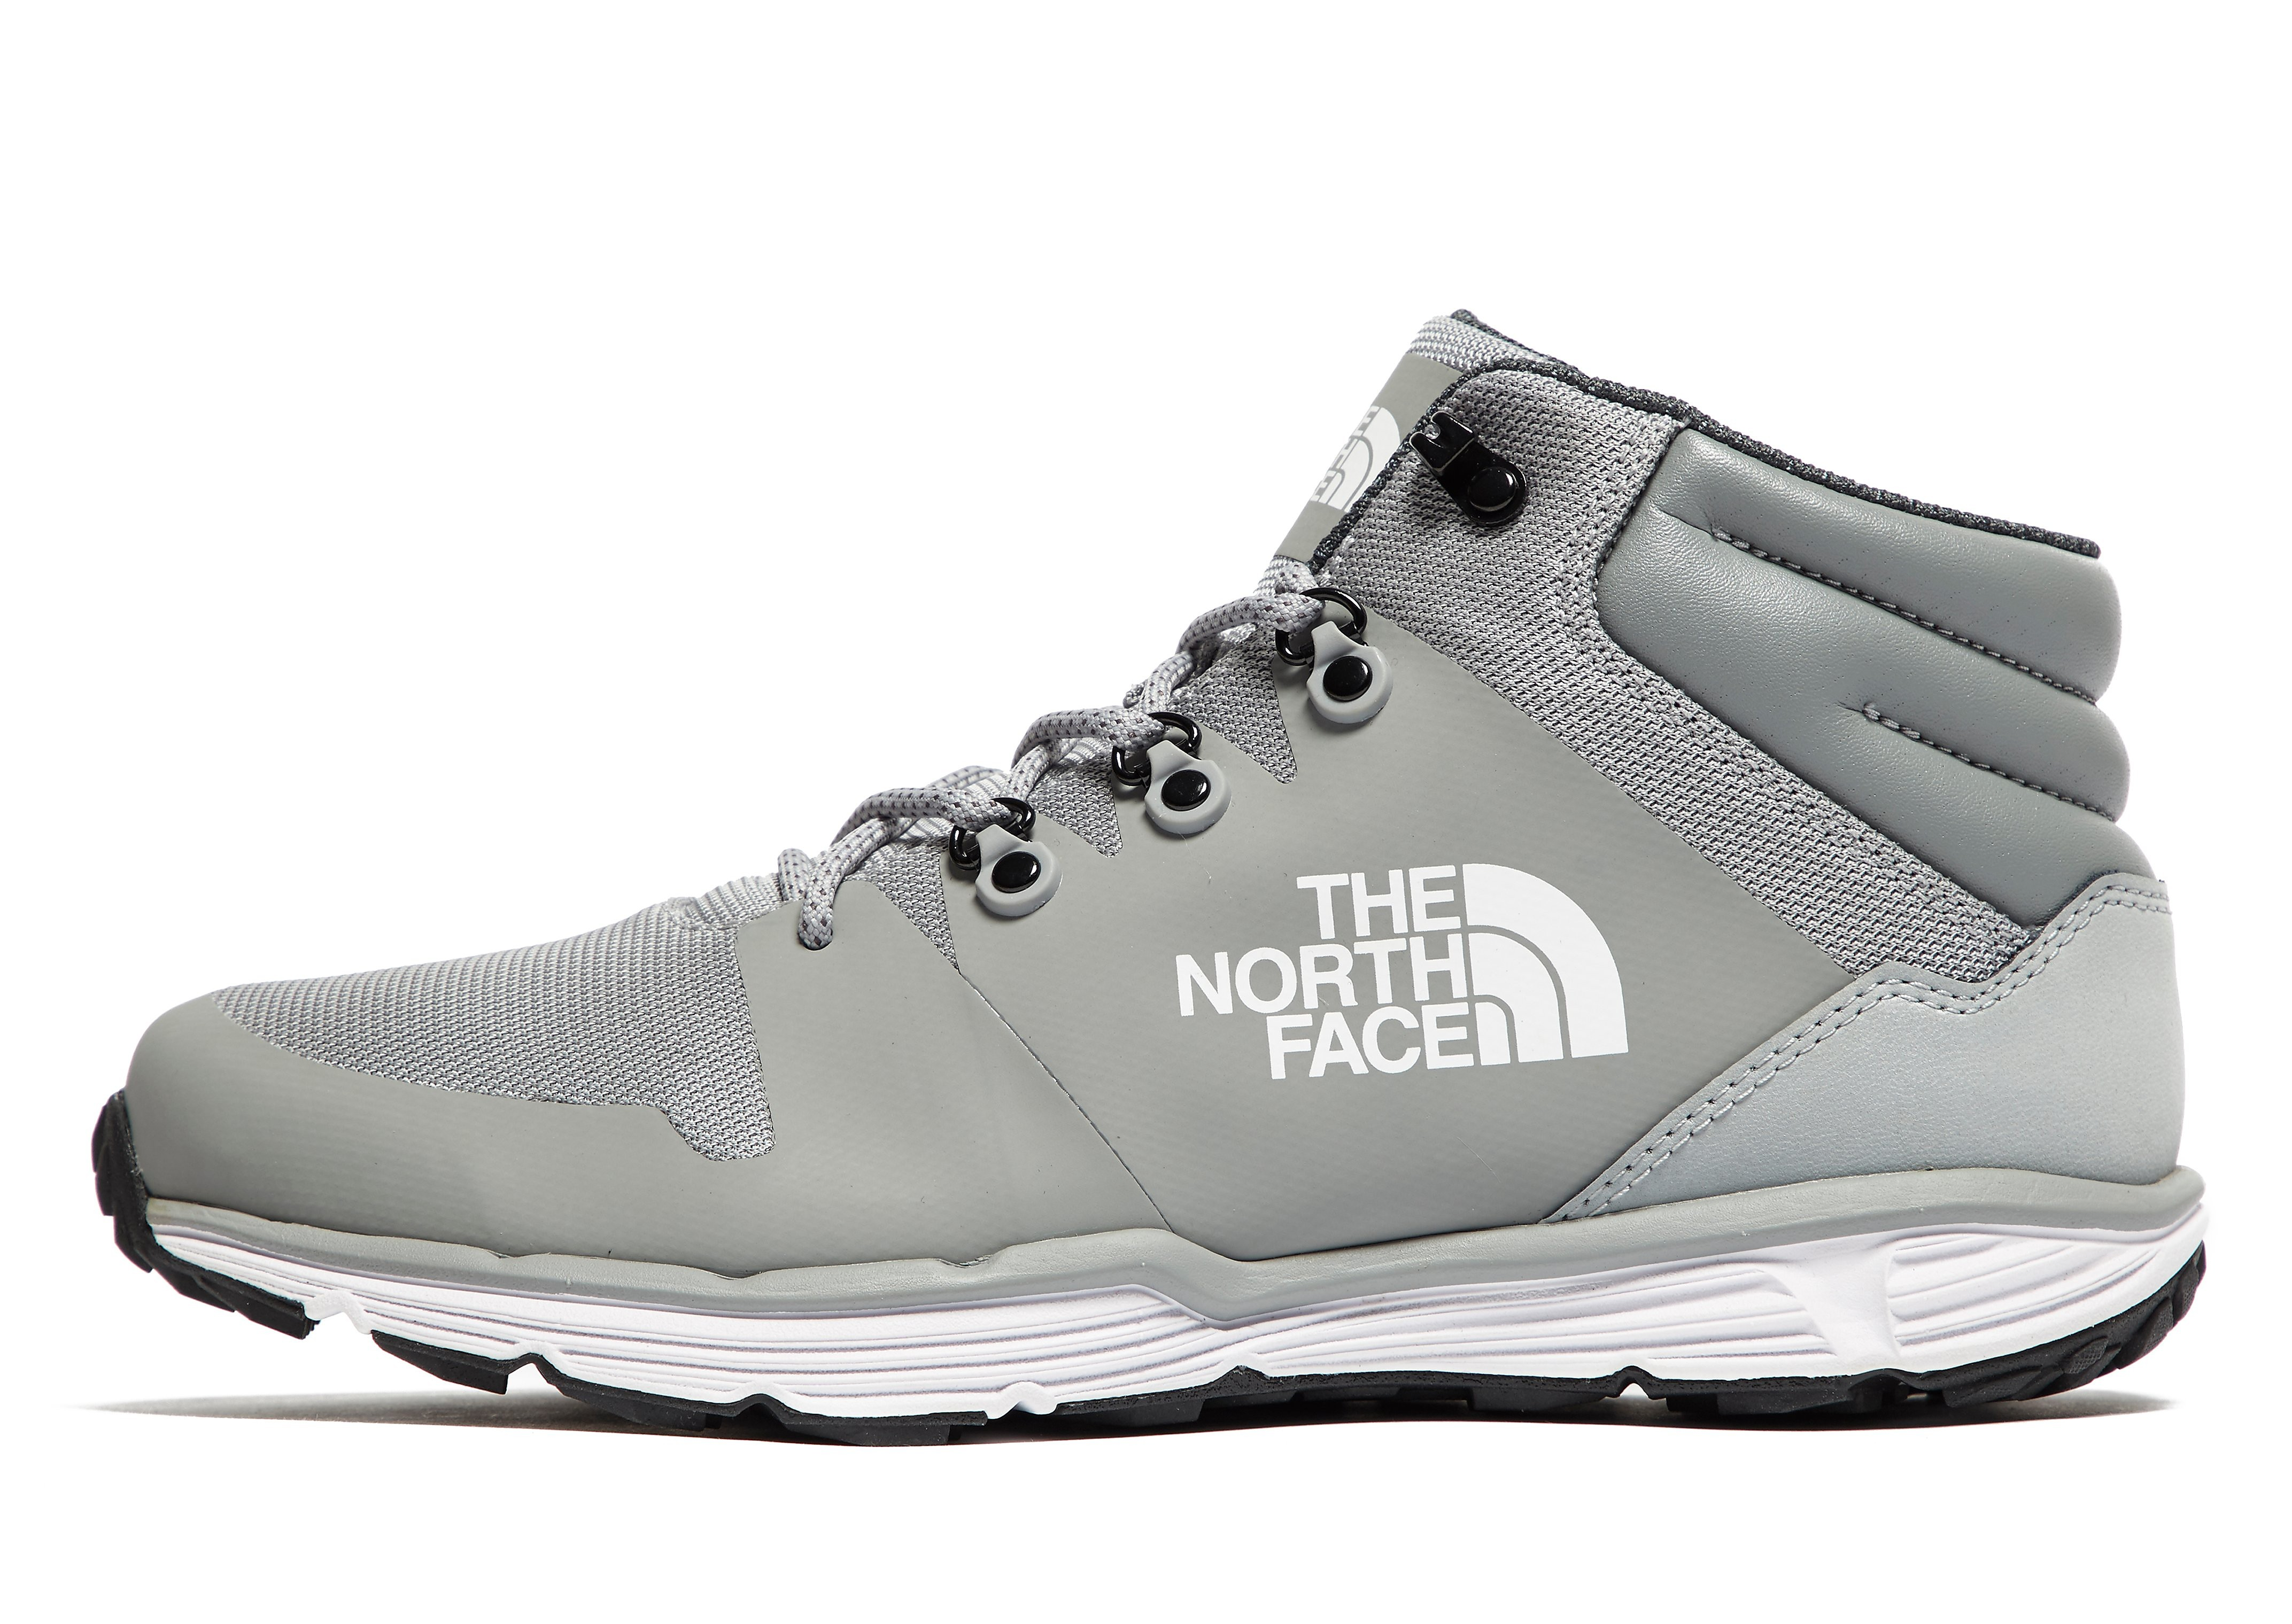 The North Face Litewave JXT Mid